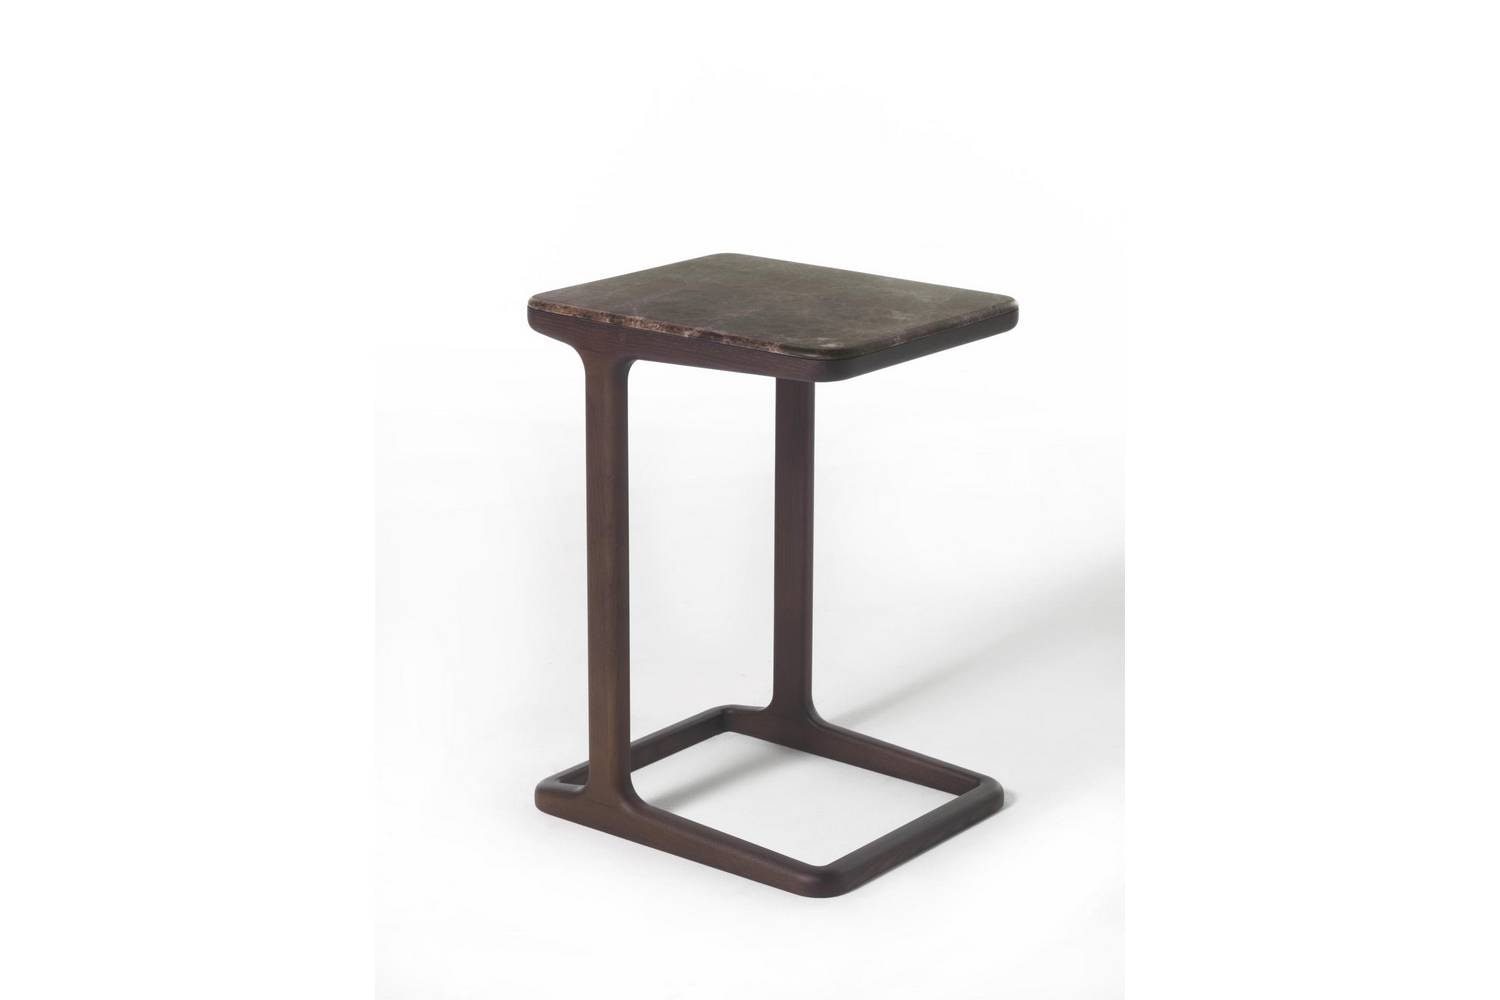 Script Side Table by Emmanuel Gallina for Porada